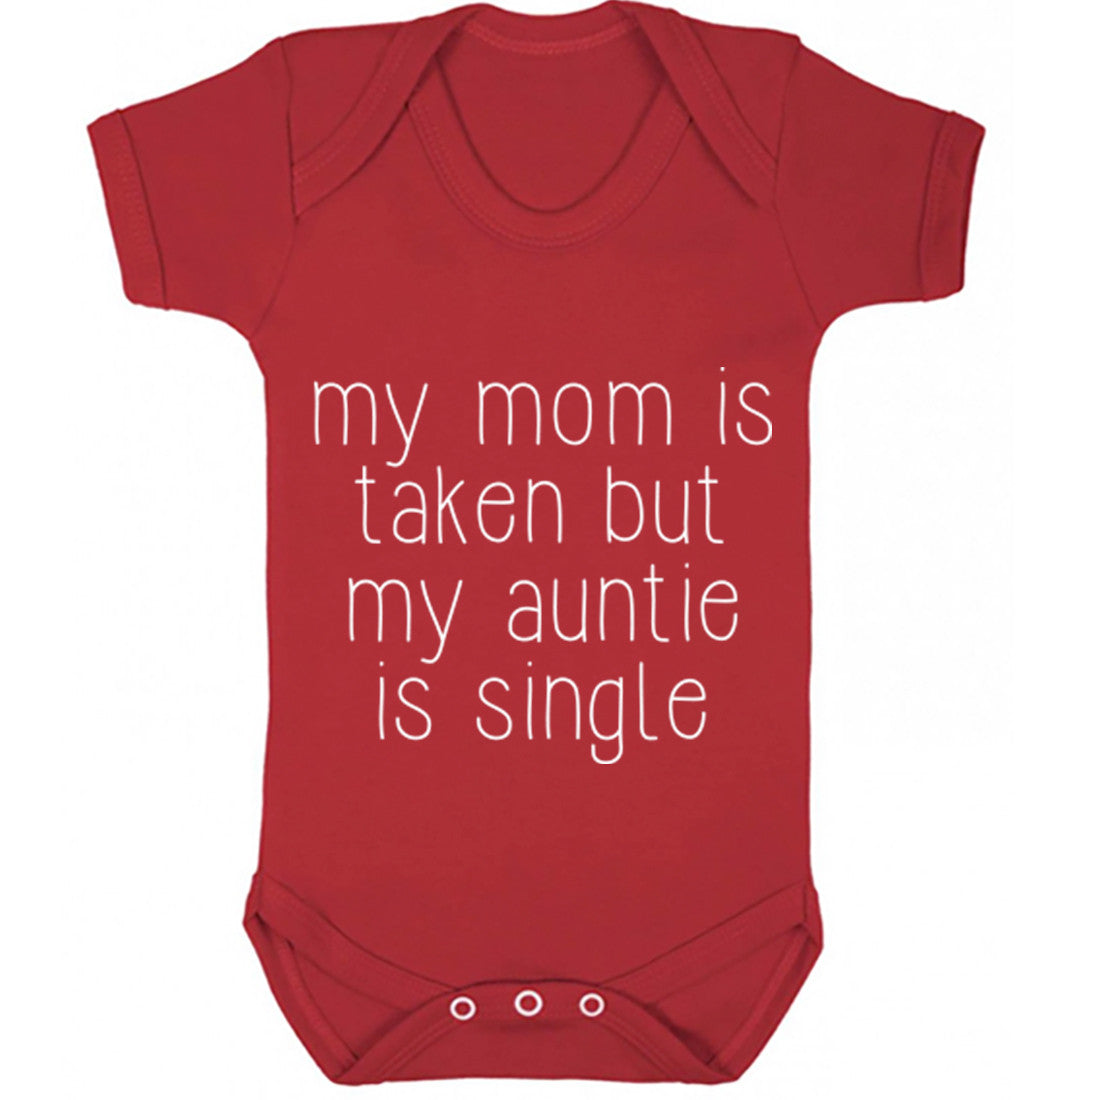 My Mom Is Taken But My Aunty Is Single Baby Vest K0196